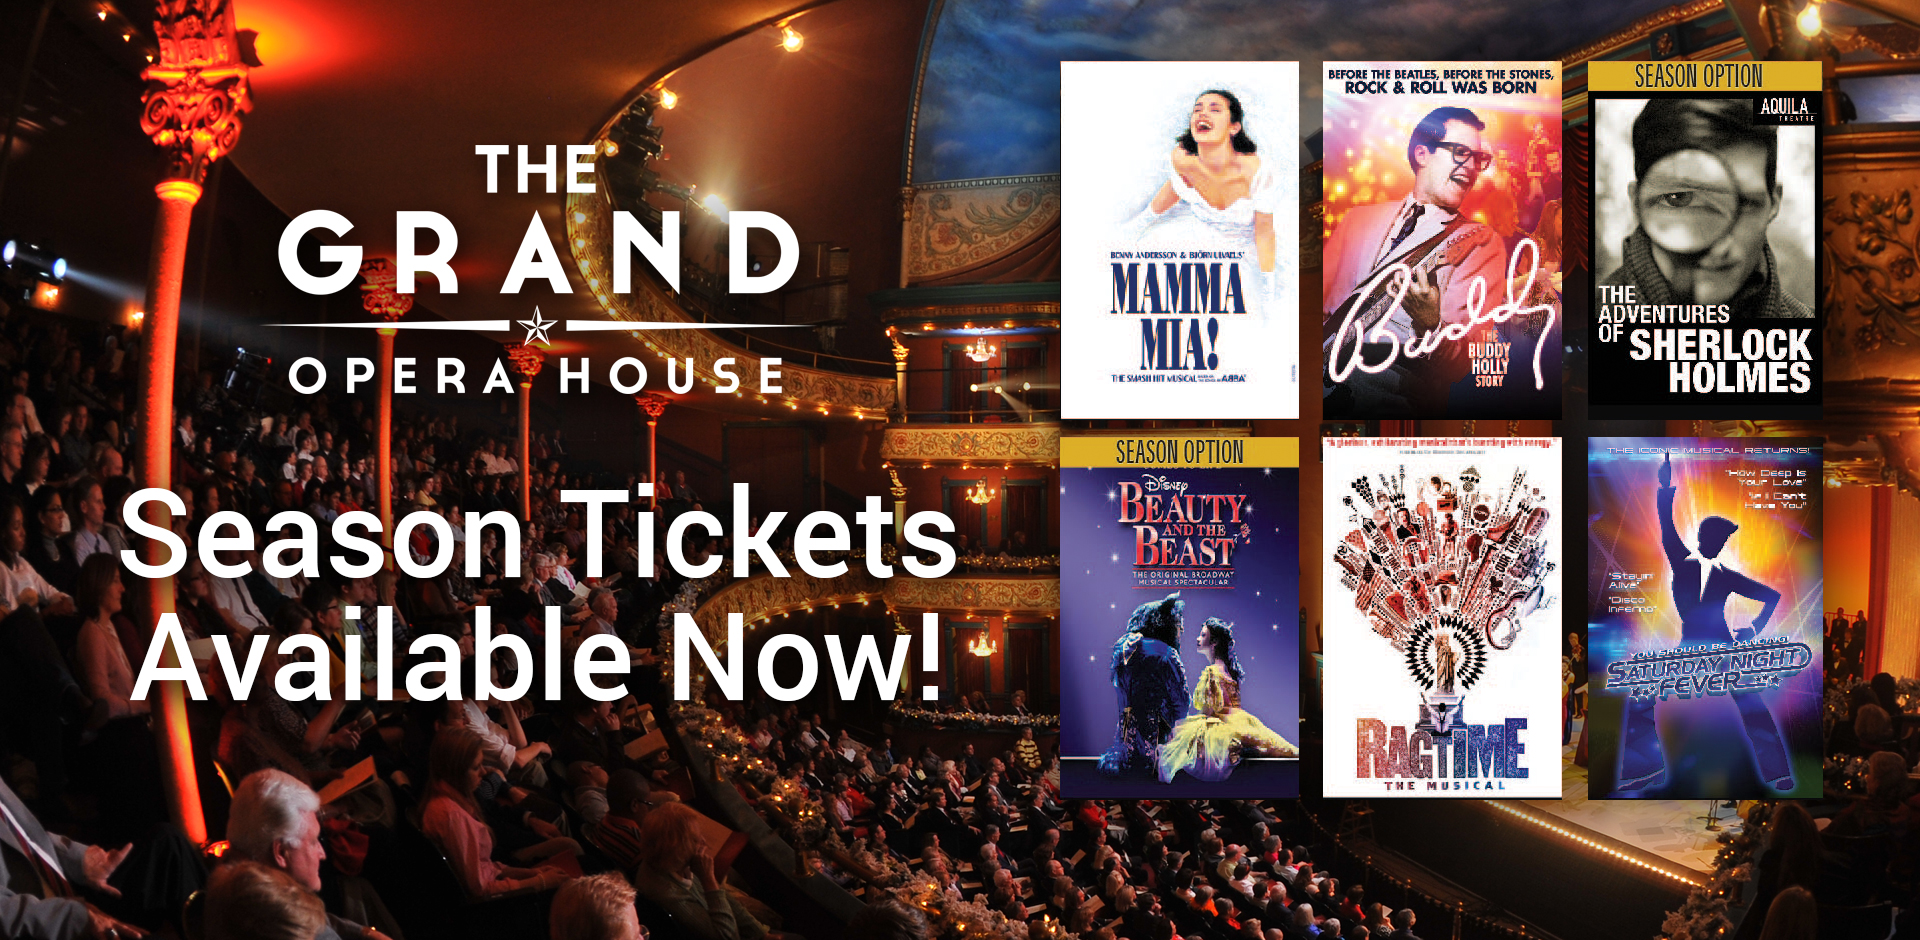 Grand Opera House Season Tickets Now On Sale!